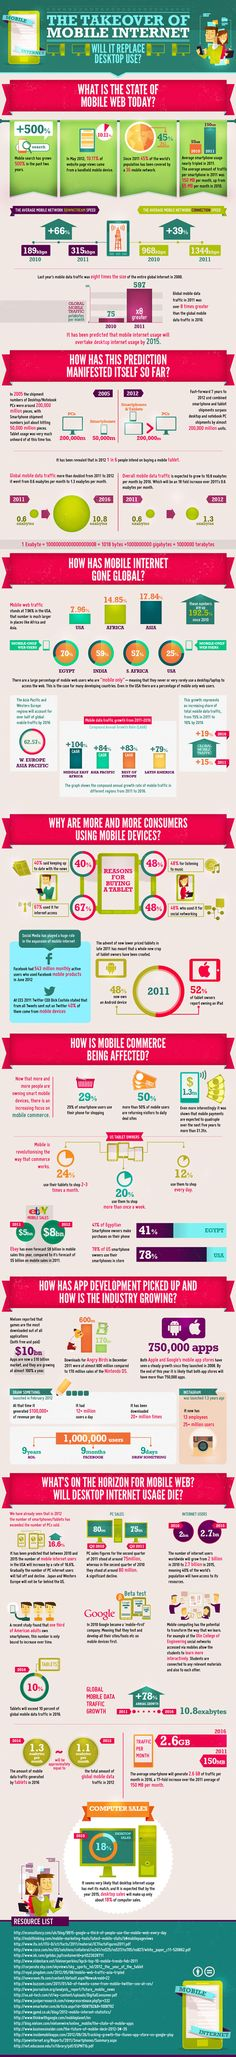 The Takeover of the Mobile Web (Infographic)